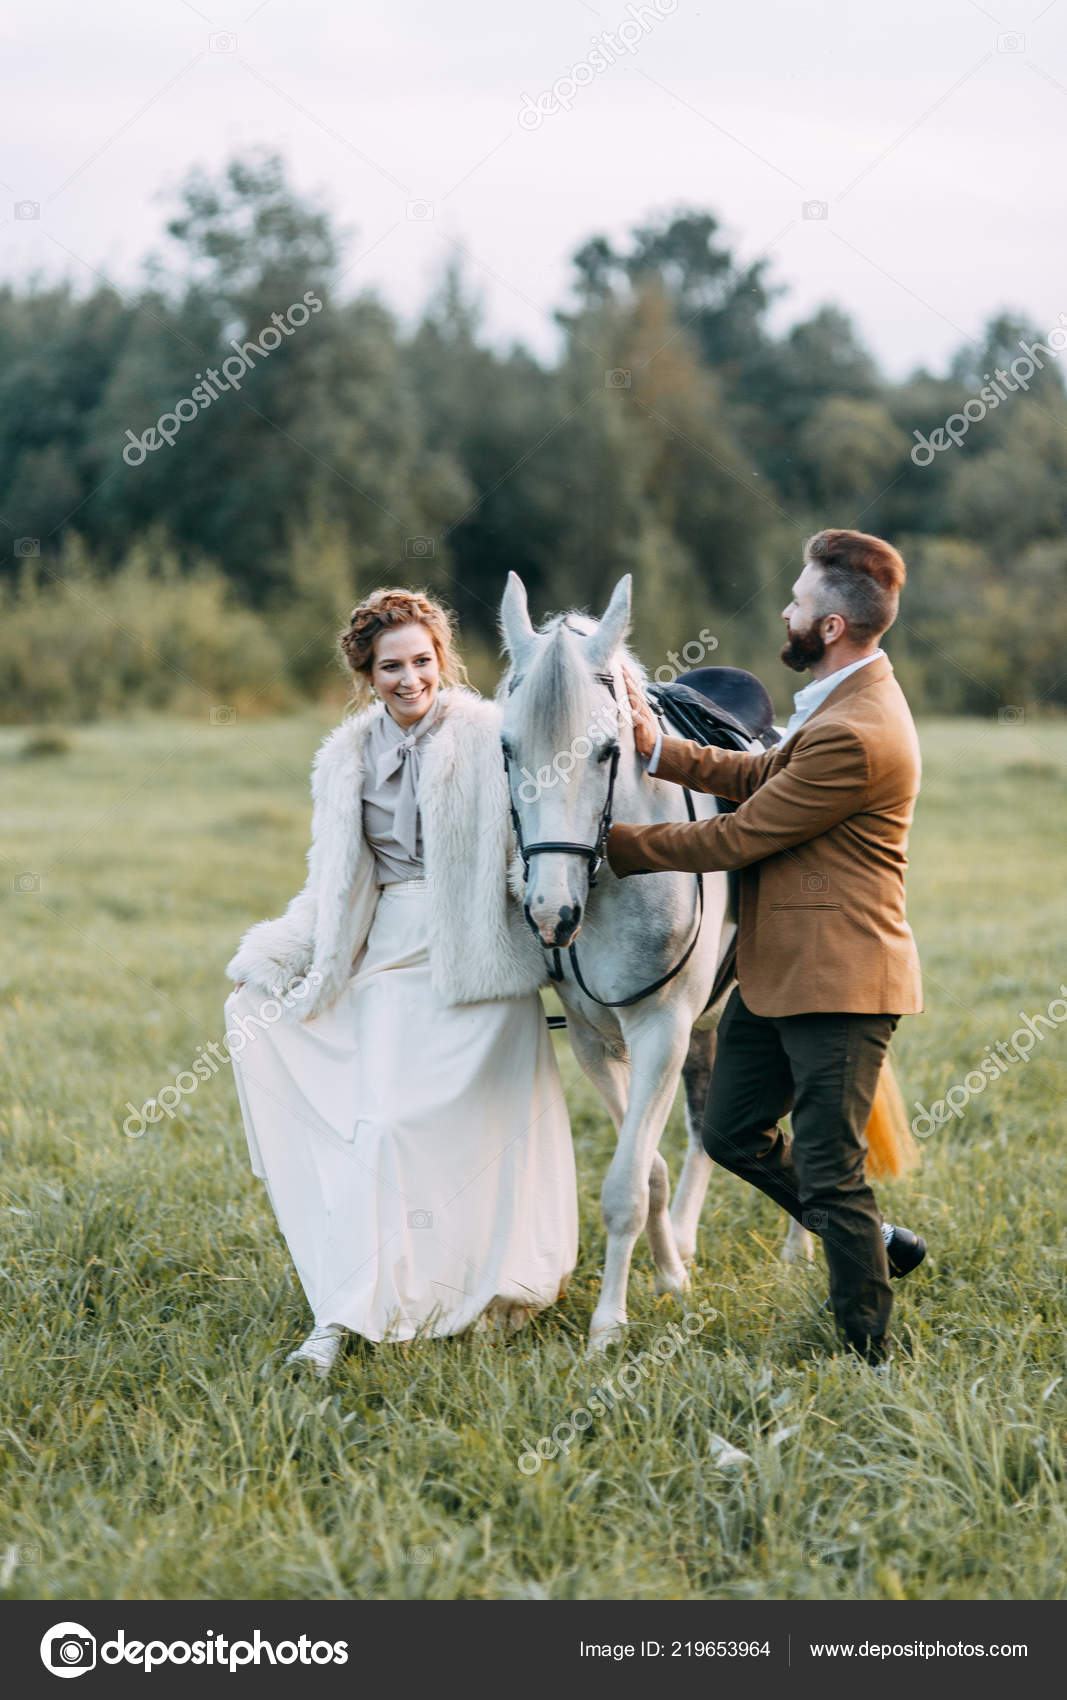 Wedding American Style Ranch Horse Walk Couples Fields Sunset Friends Stock Photo C Pavelvozmischev 219653964